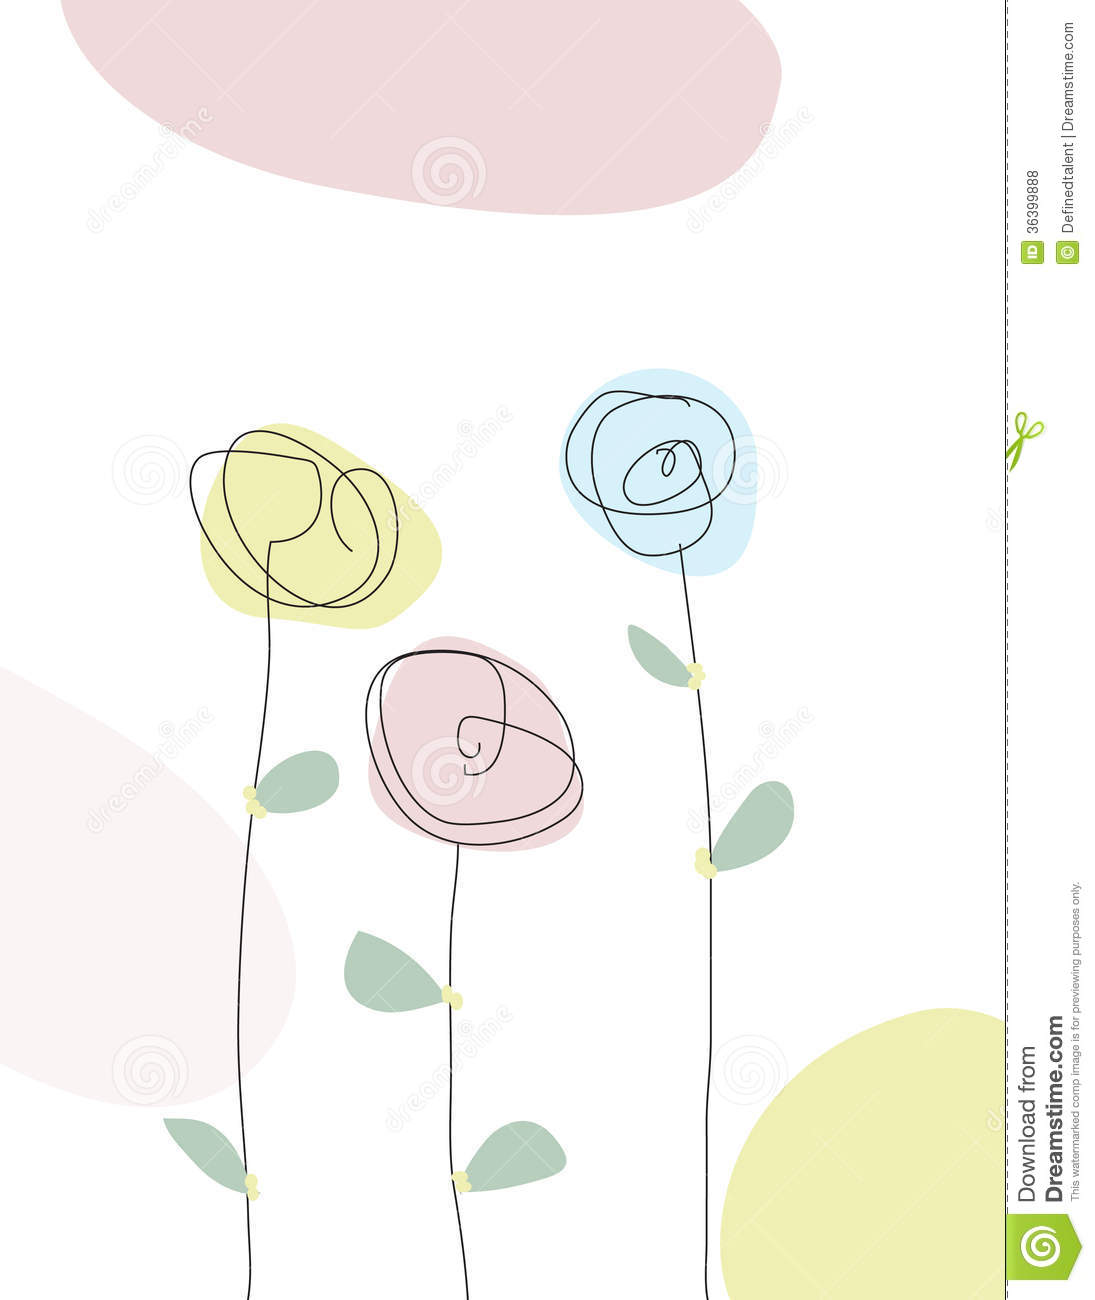 Line Drawing Spring Flowers : Scribble line drawing of spring flowers royalty free stock